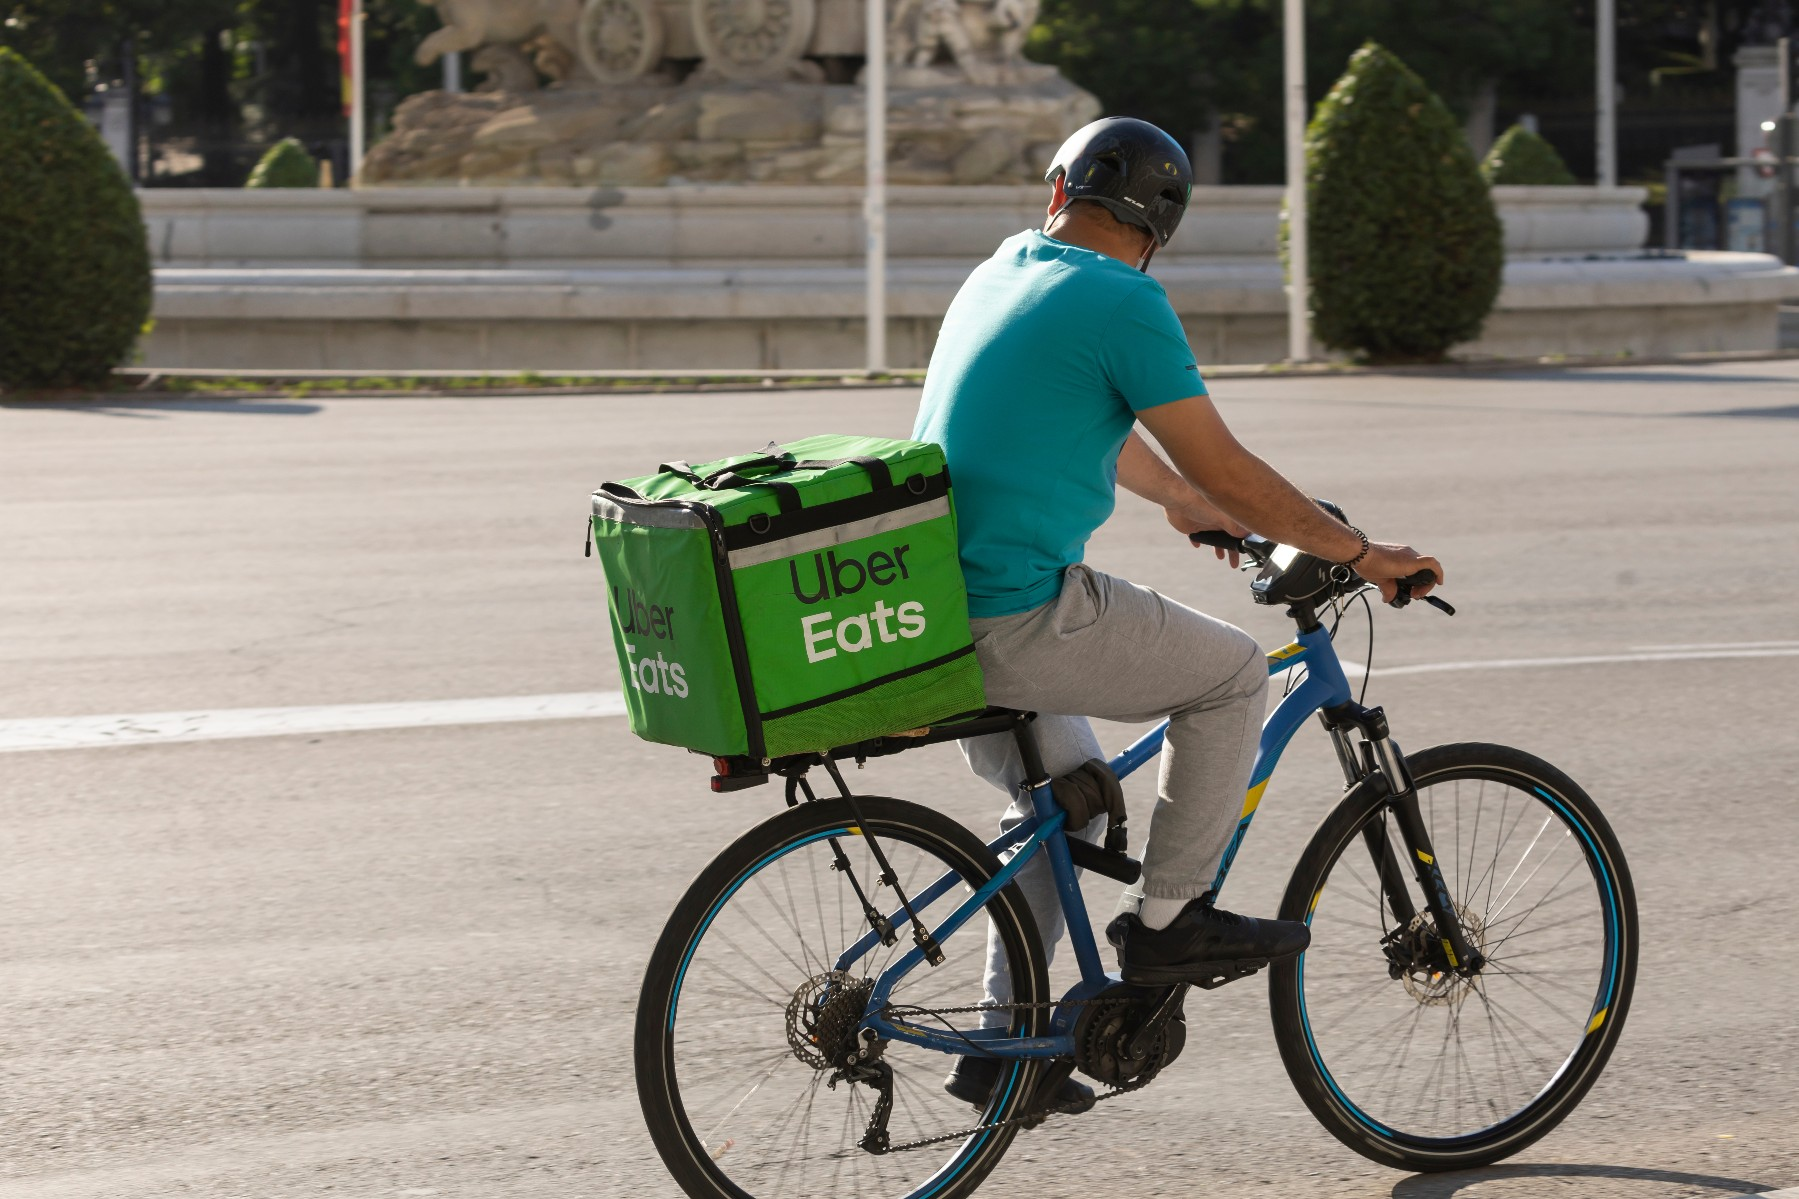 Spain labor laws, delivery worker riding bicycle